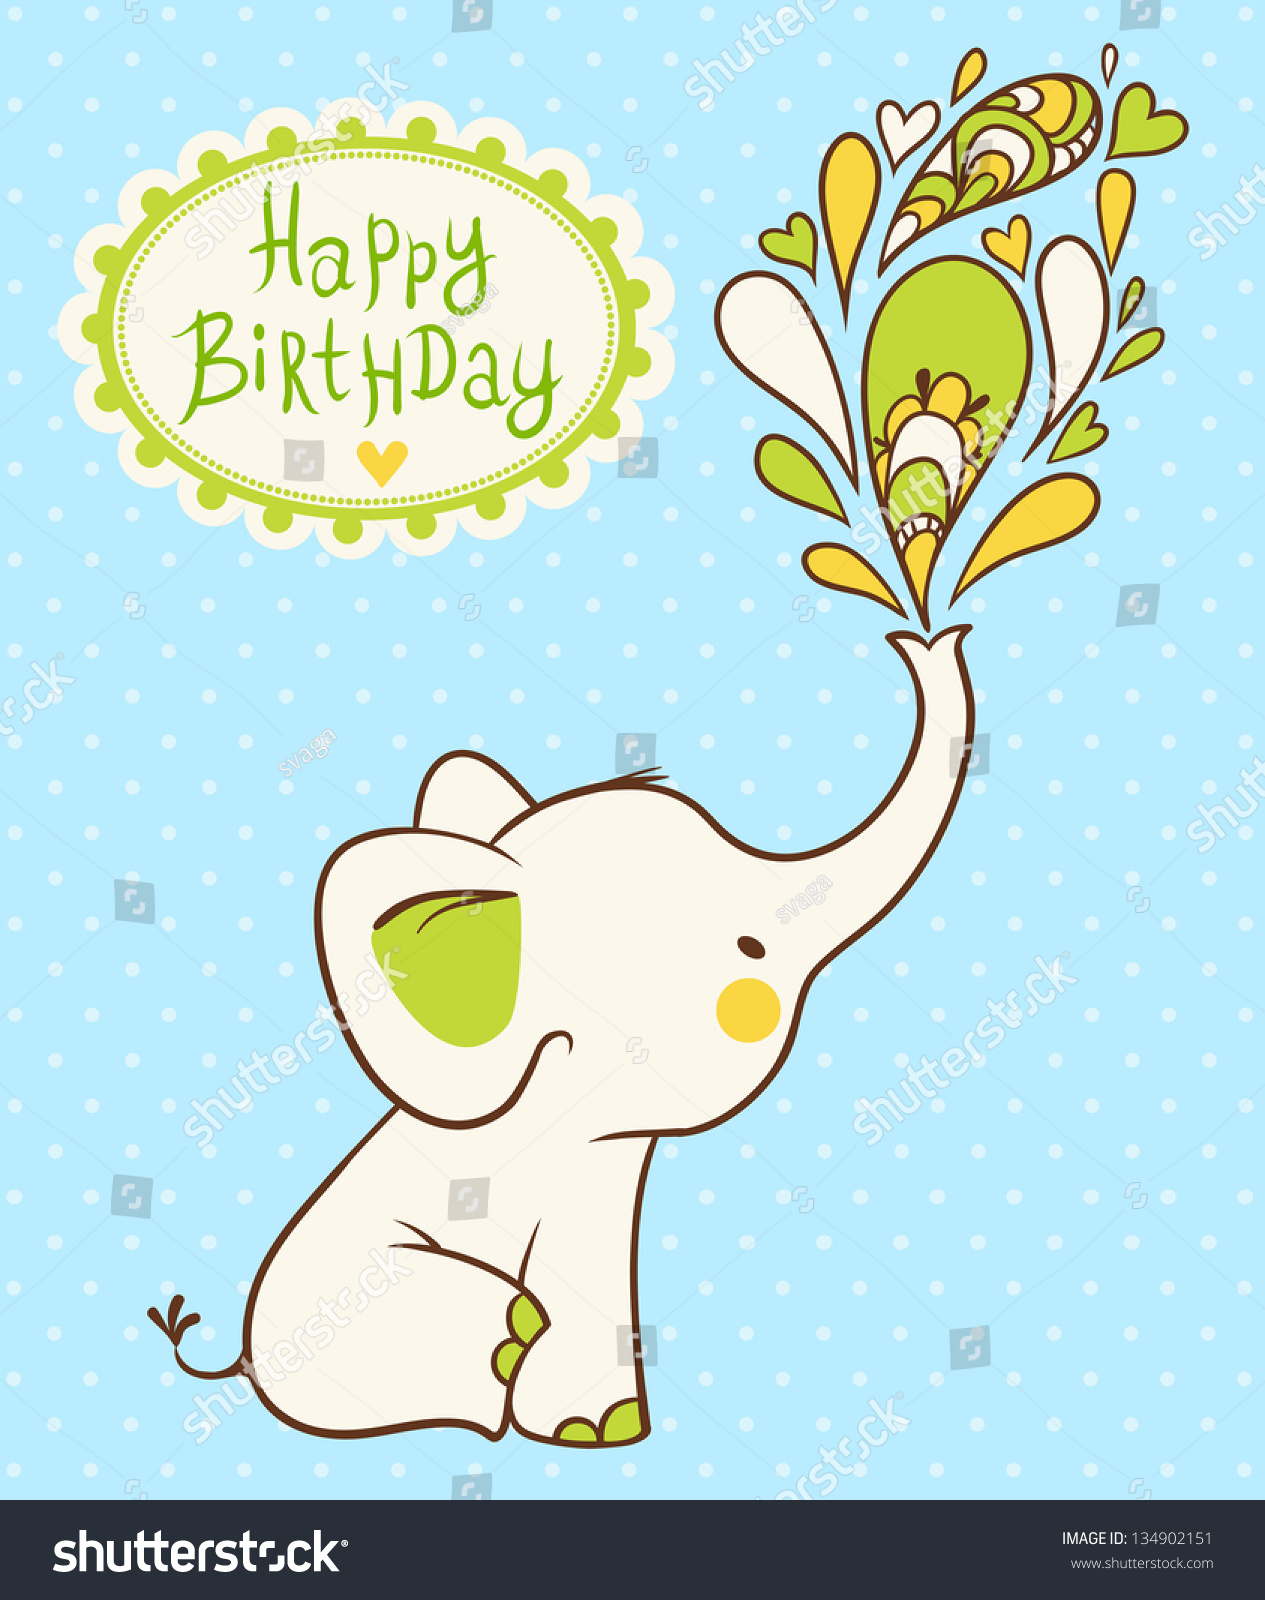 Happy Birthday Card Cartoon Elephant Wishes Stock Vector